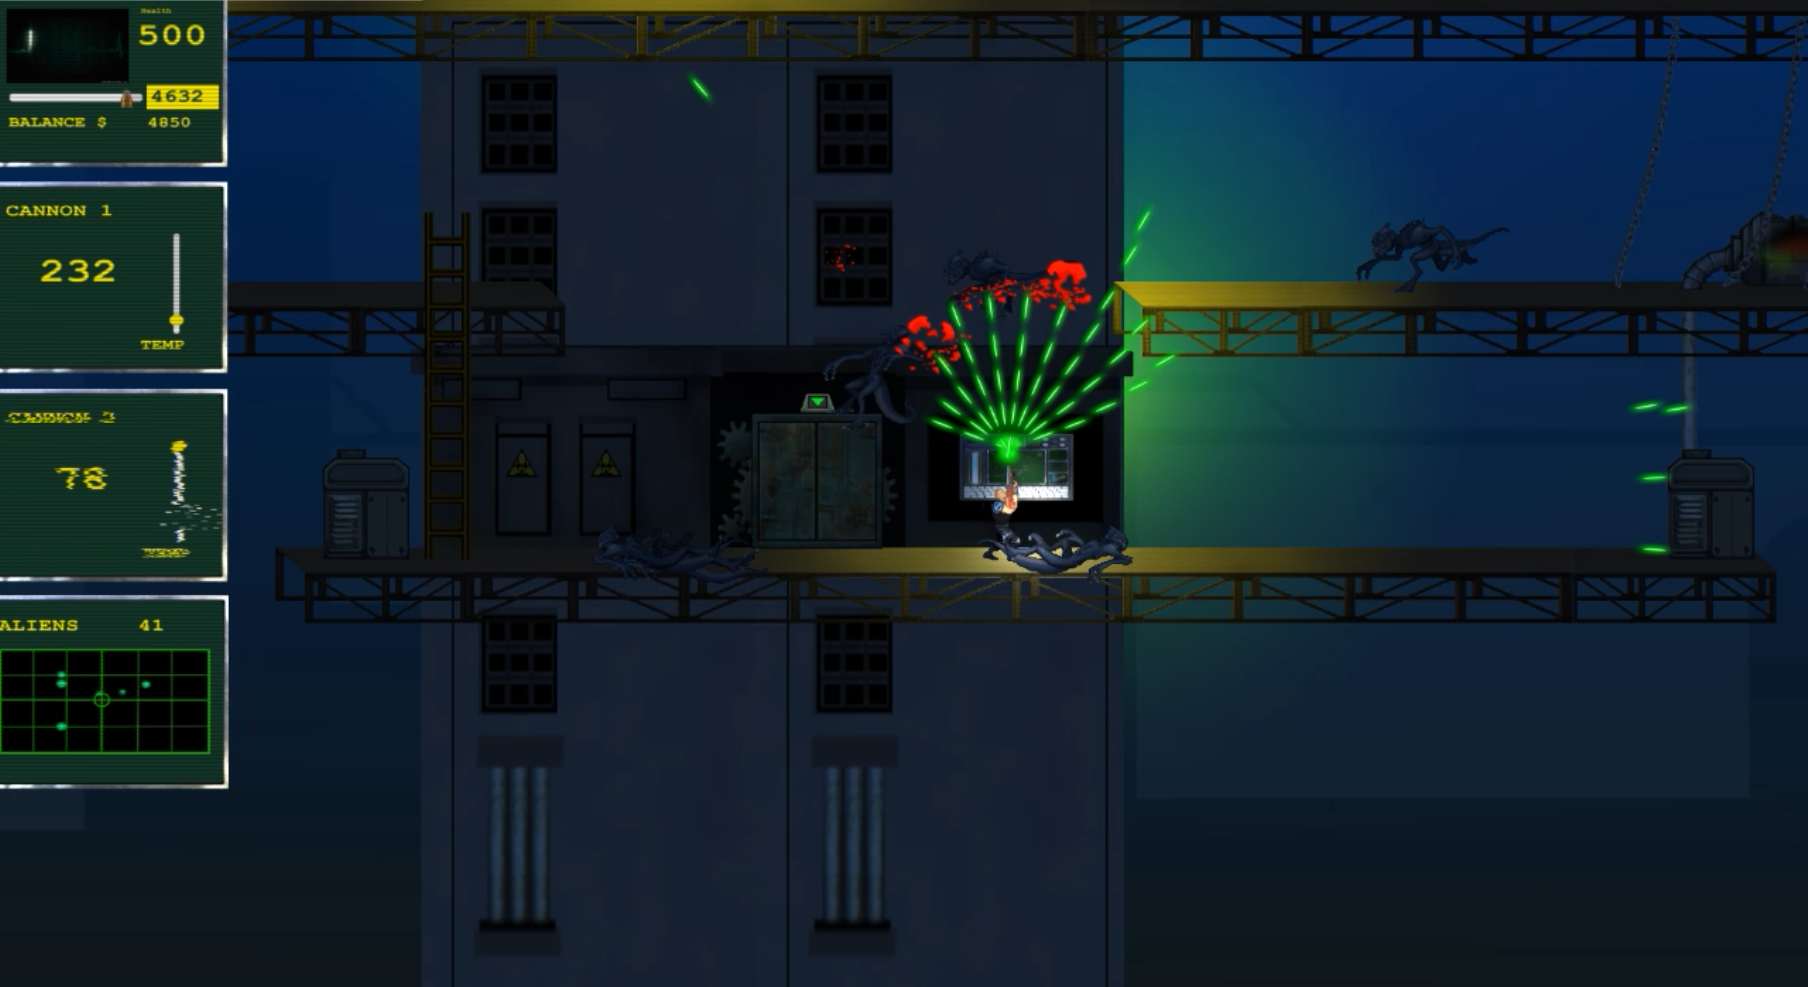 Level 2 - Nuclear Plant